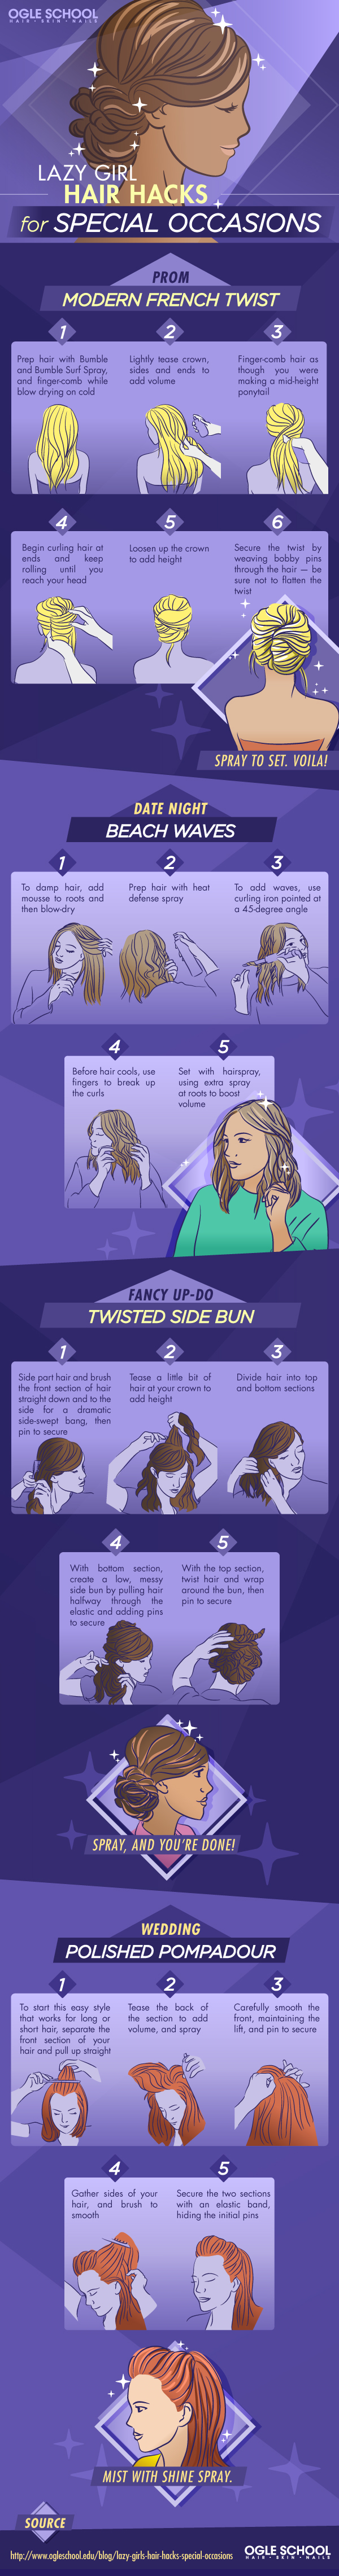 Lazy Girl Hair Hacks for Special Occasions_IG-1D